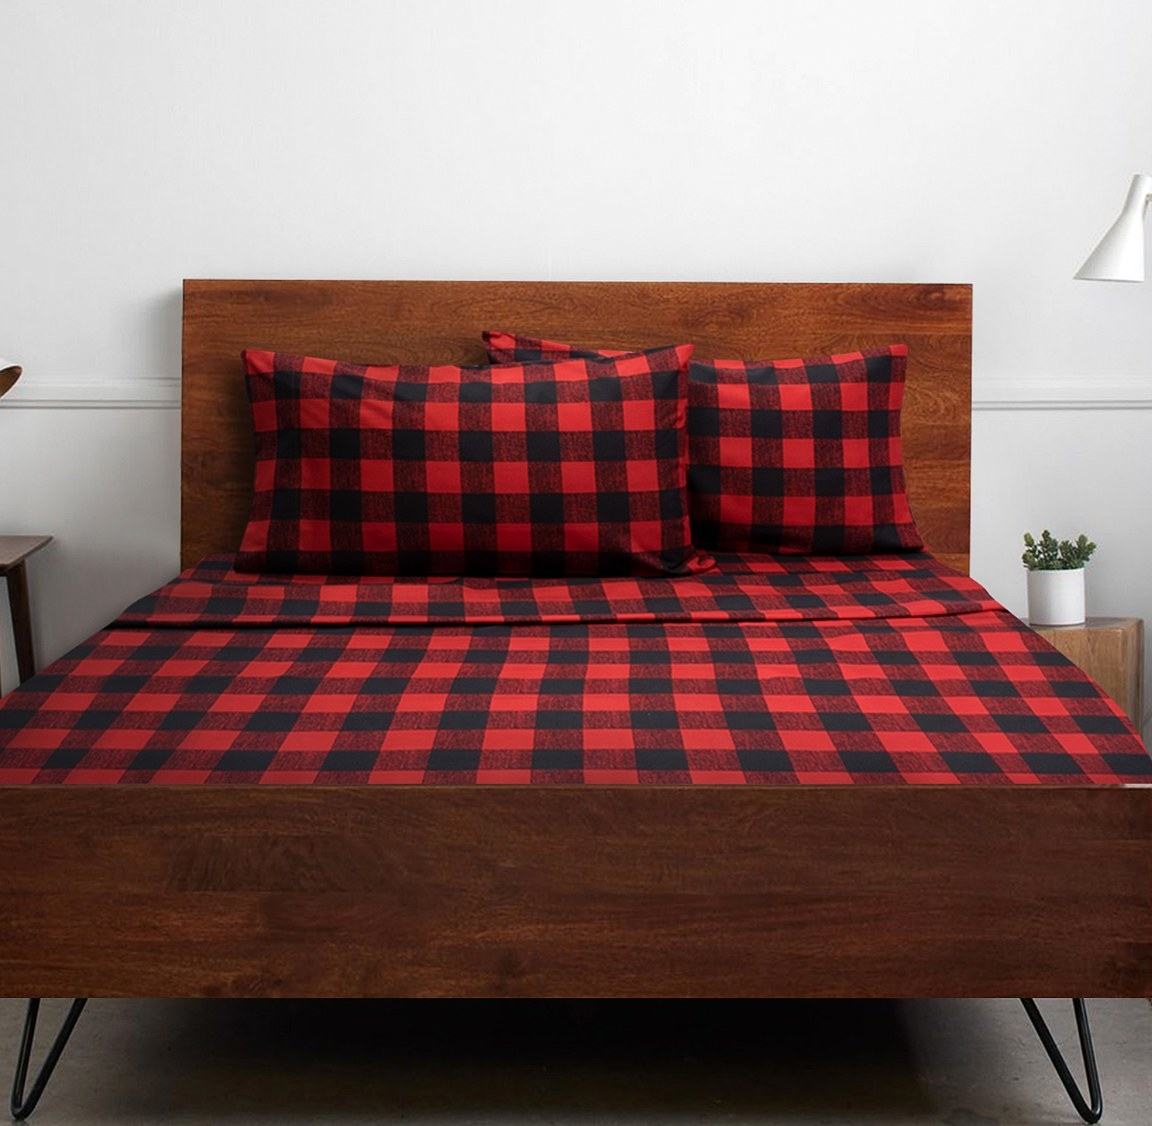 the red and black checked sheets